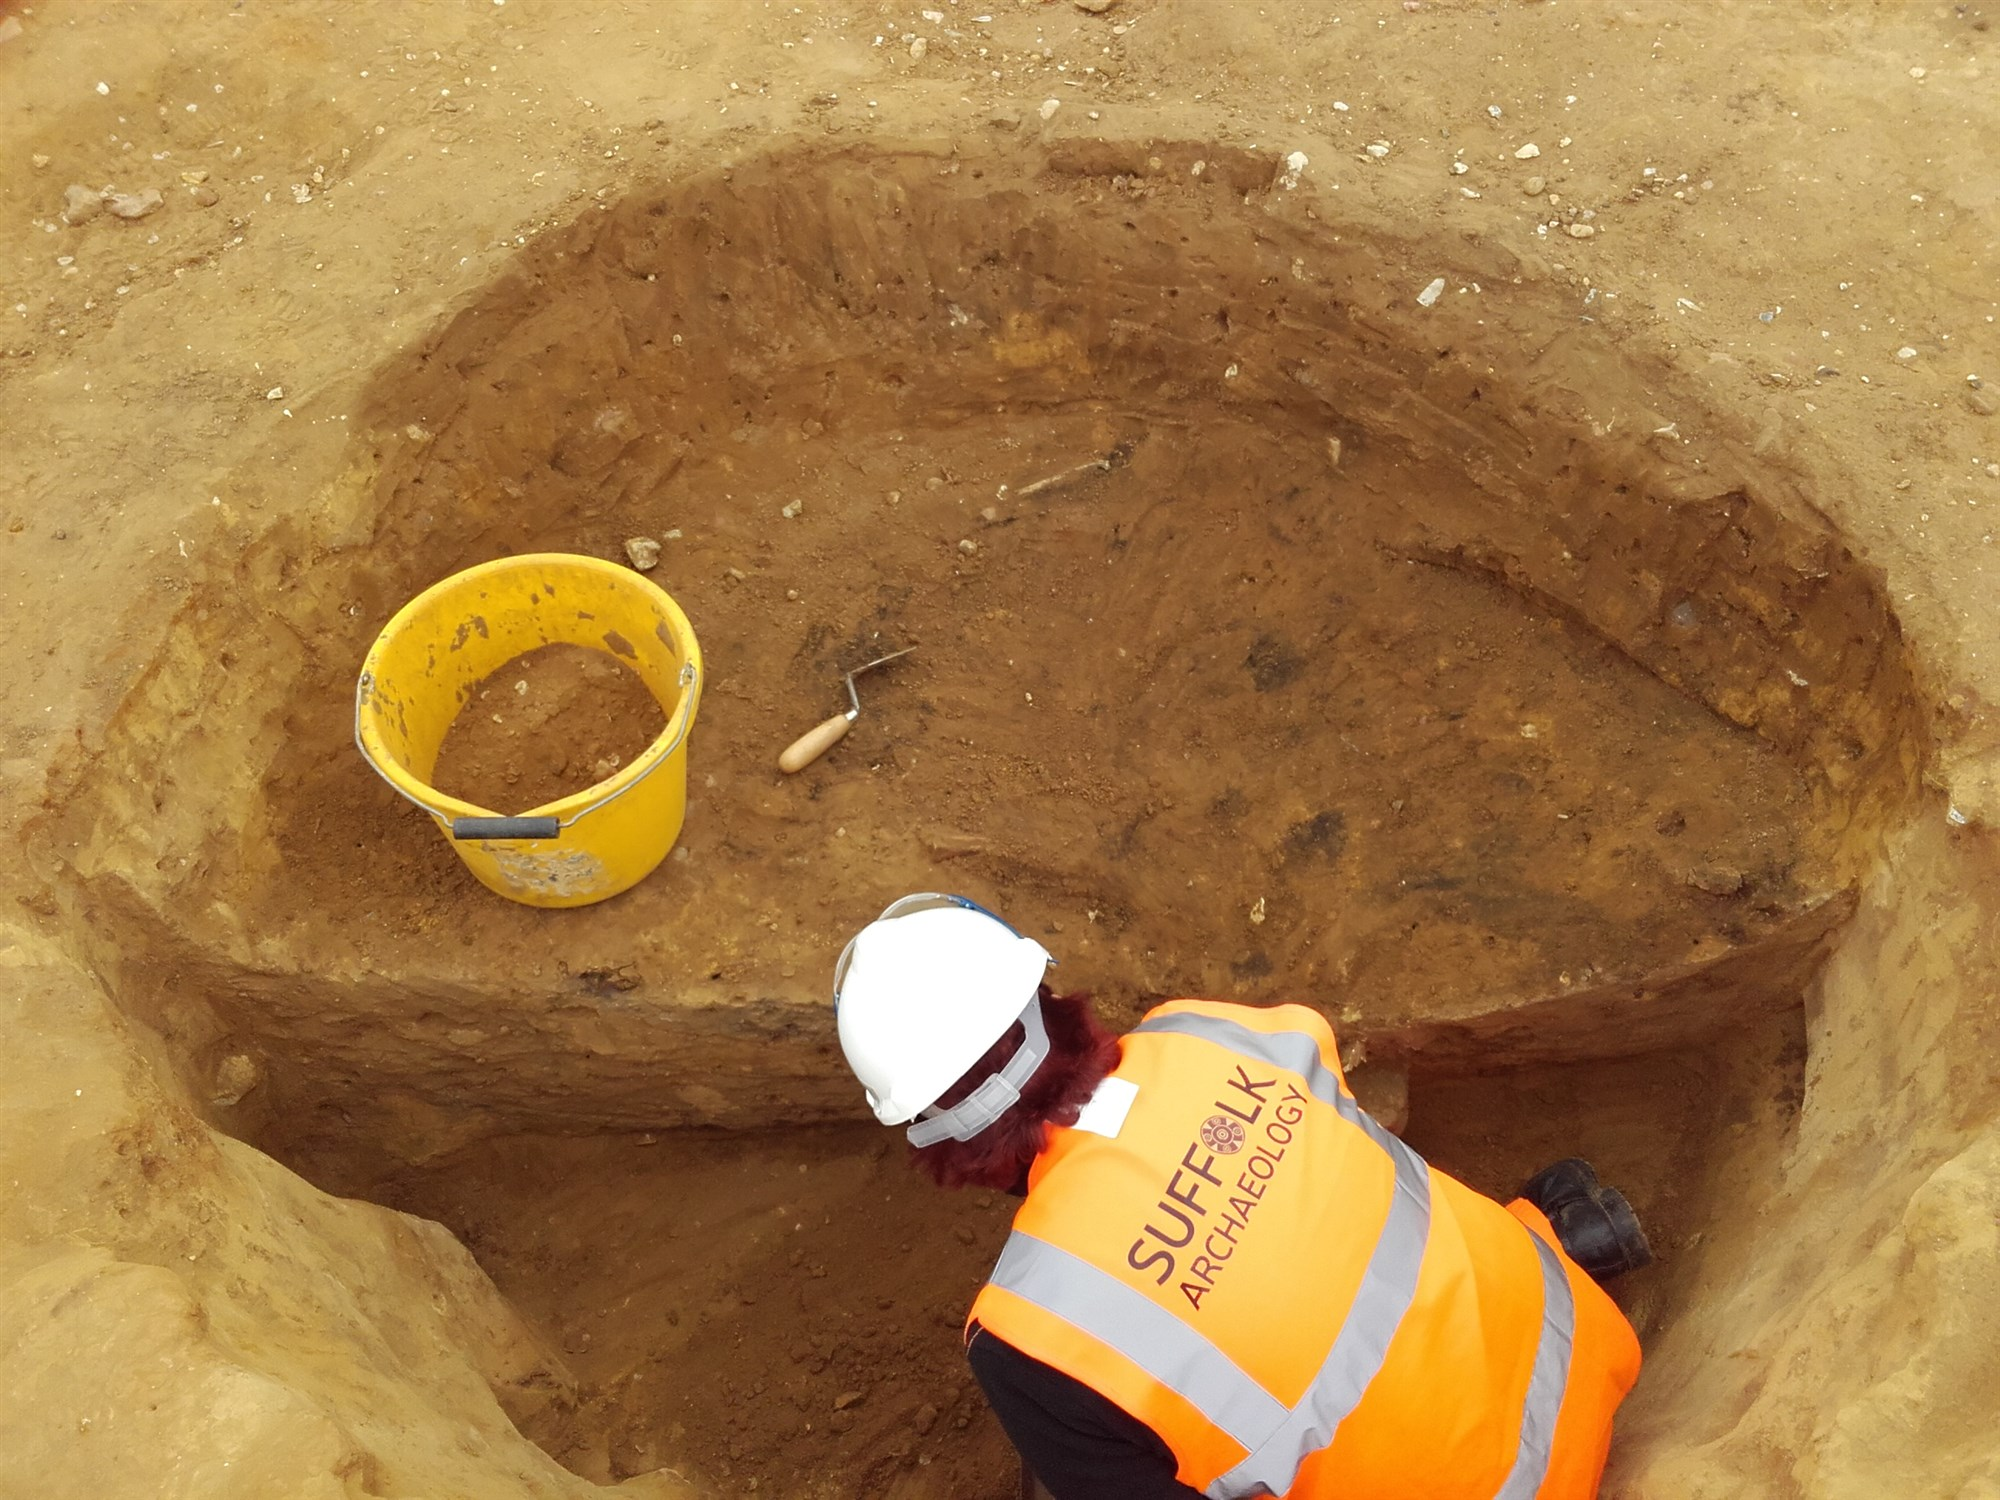 Excavating an Iron Age pit at Fornham All Saints